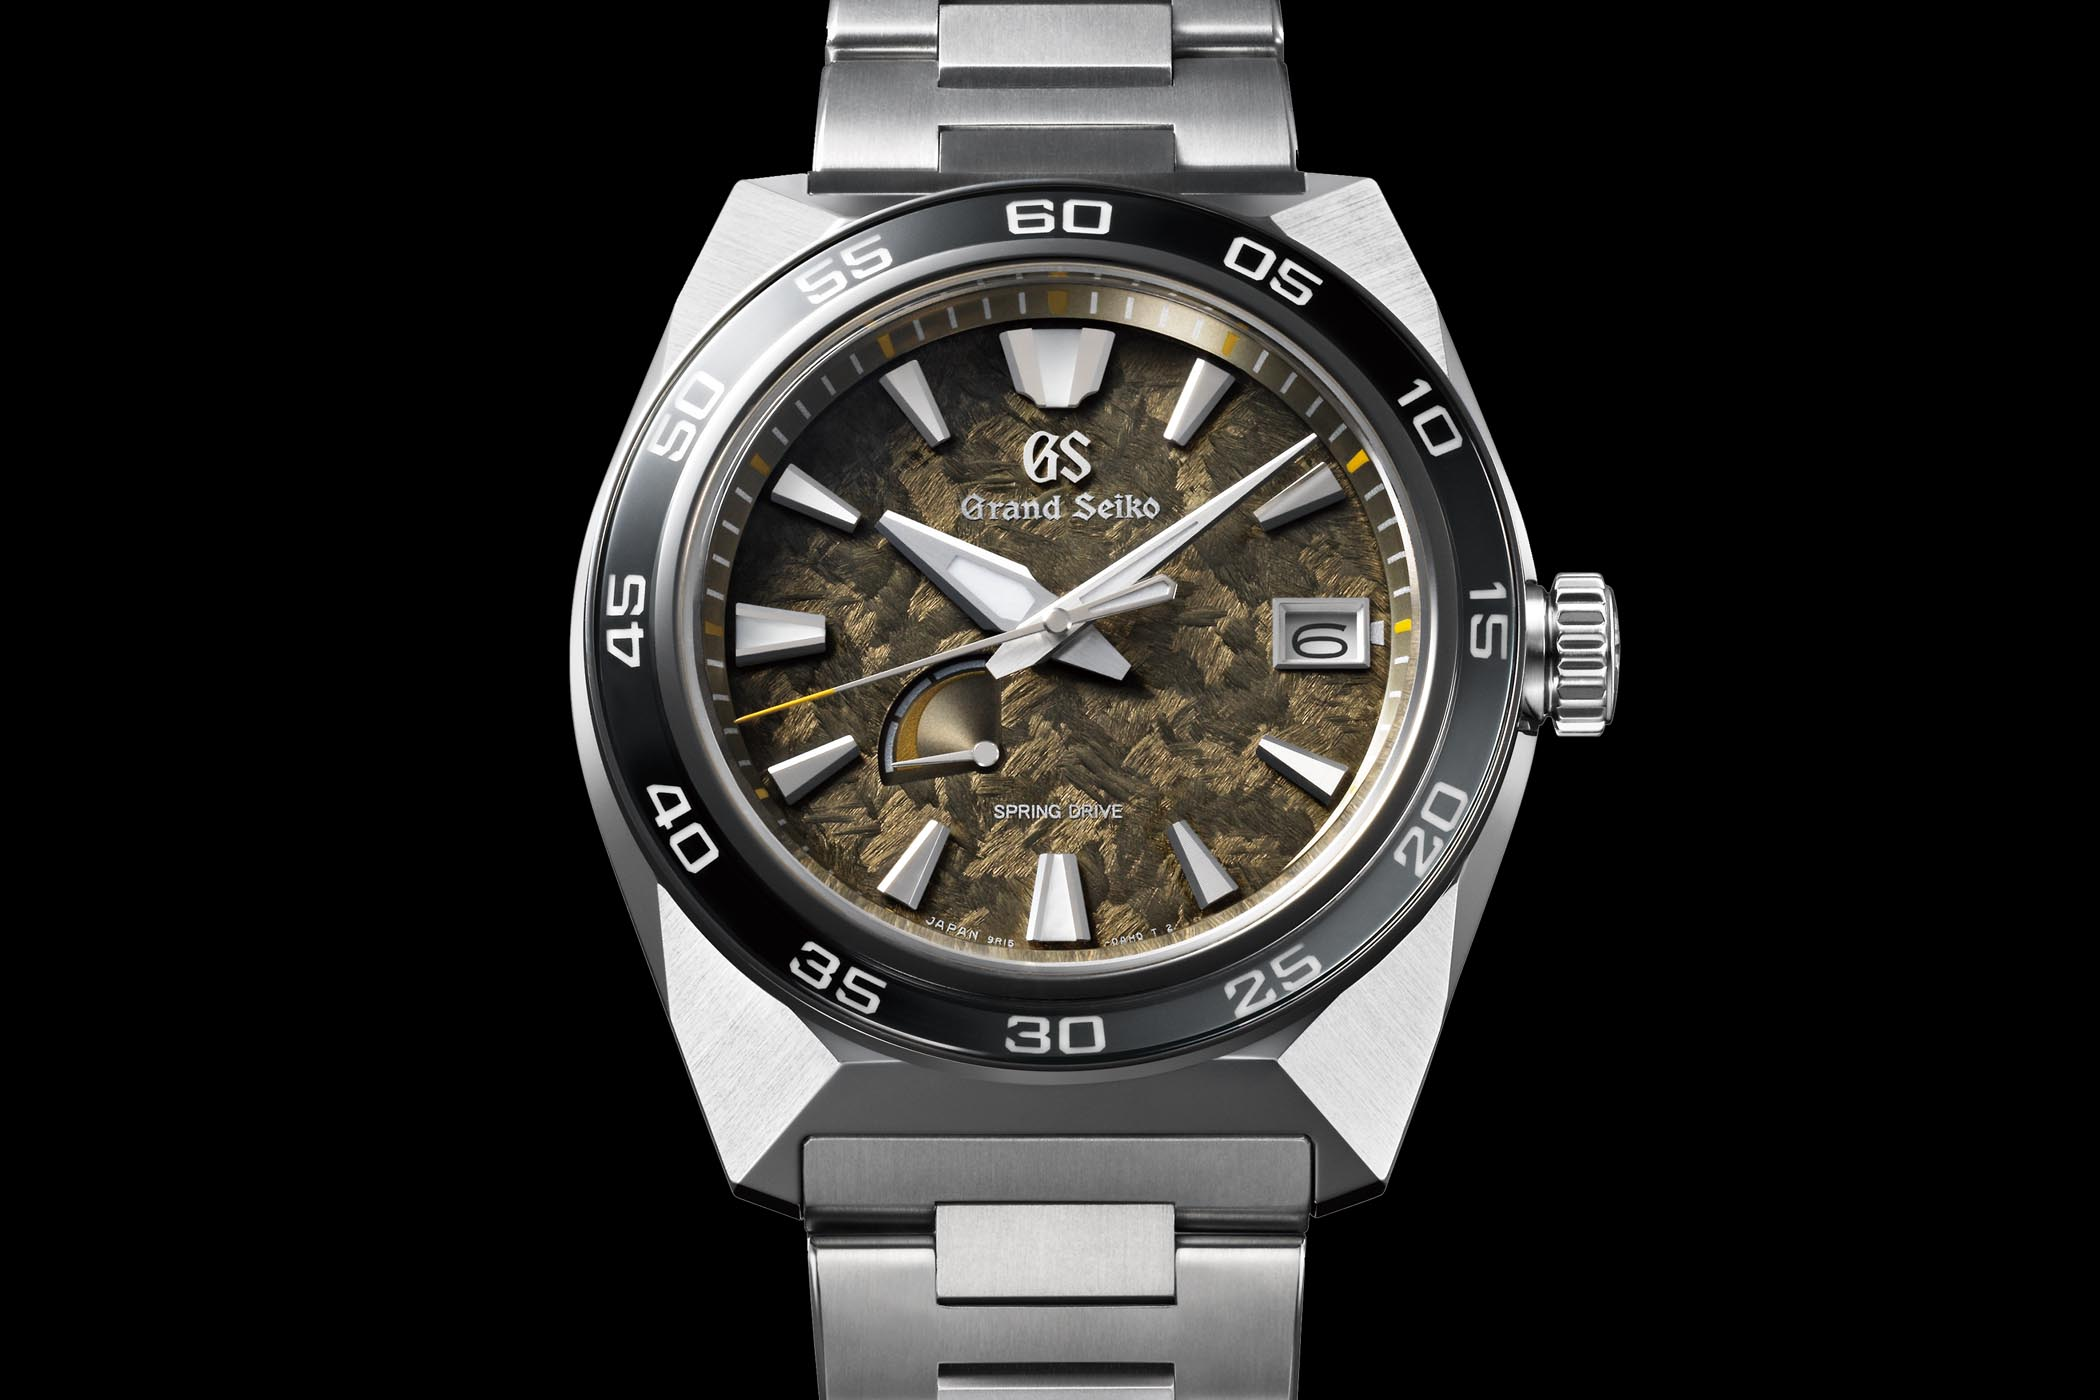 De 3 nieuw ontworpen Grand Seiko Spring Drive 20th Anniversary Limited Editions